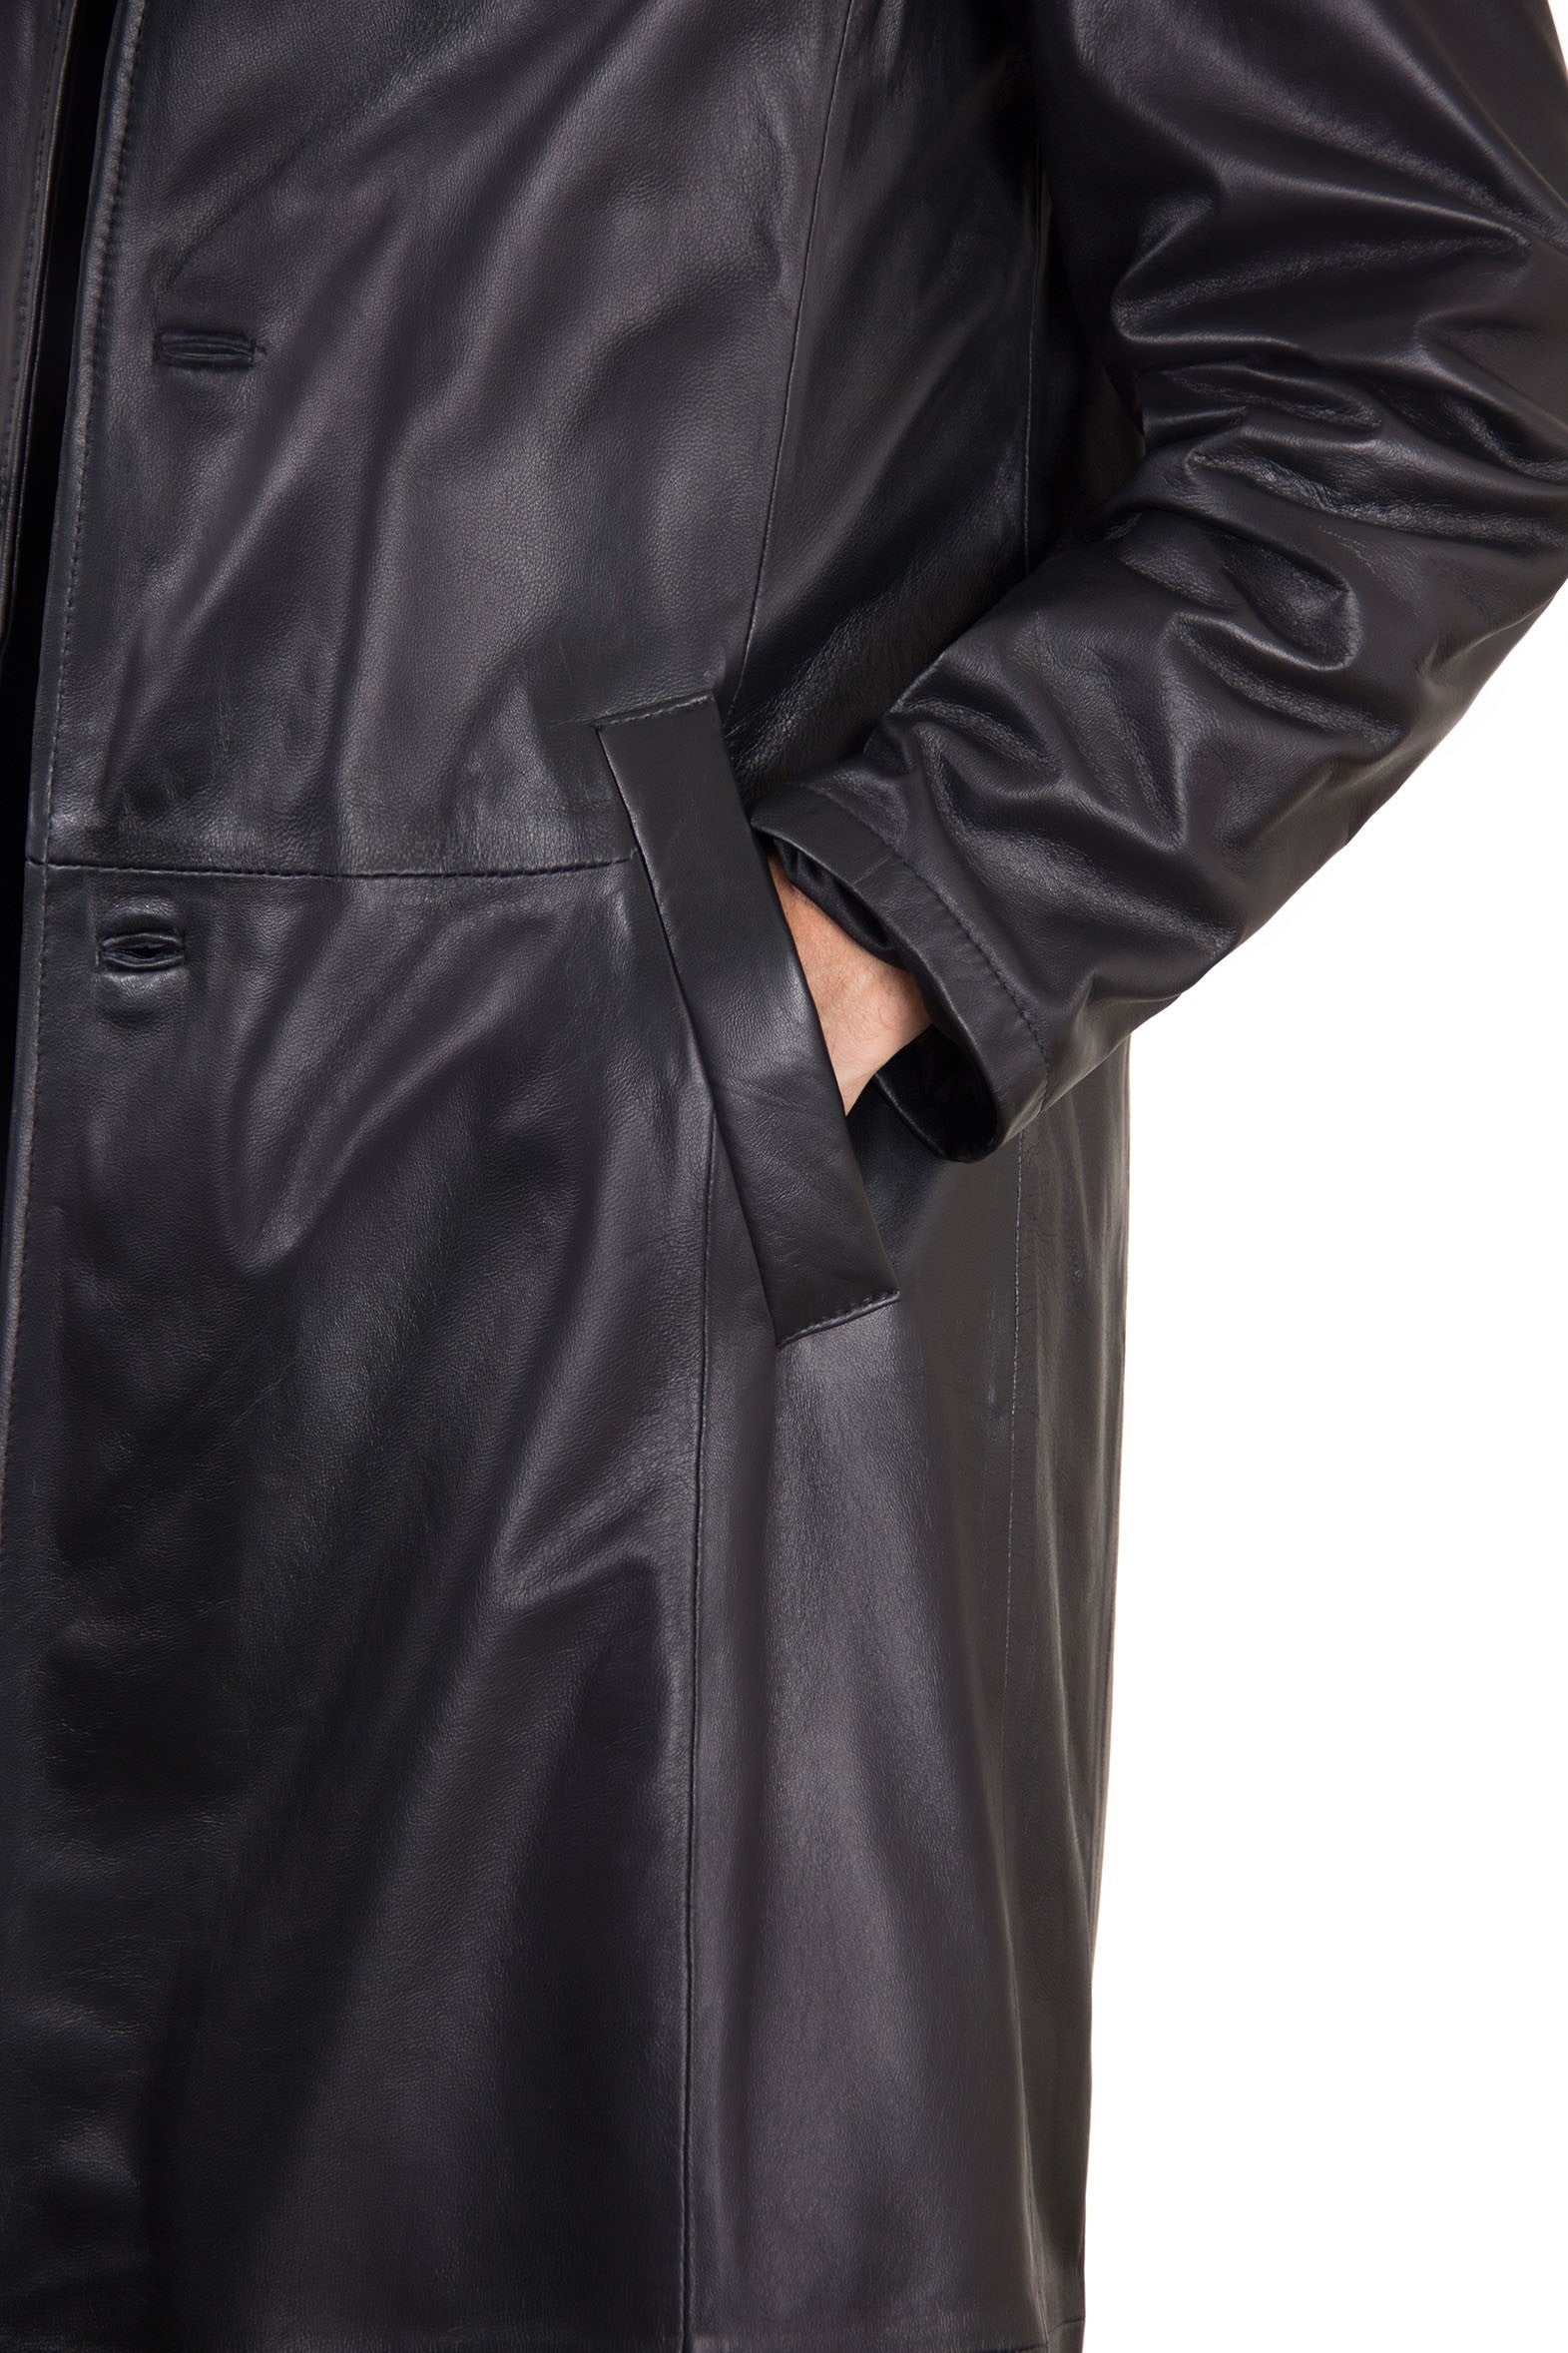 ComiCon Matrix Morpheus Handmade Men's Leather Jacket